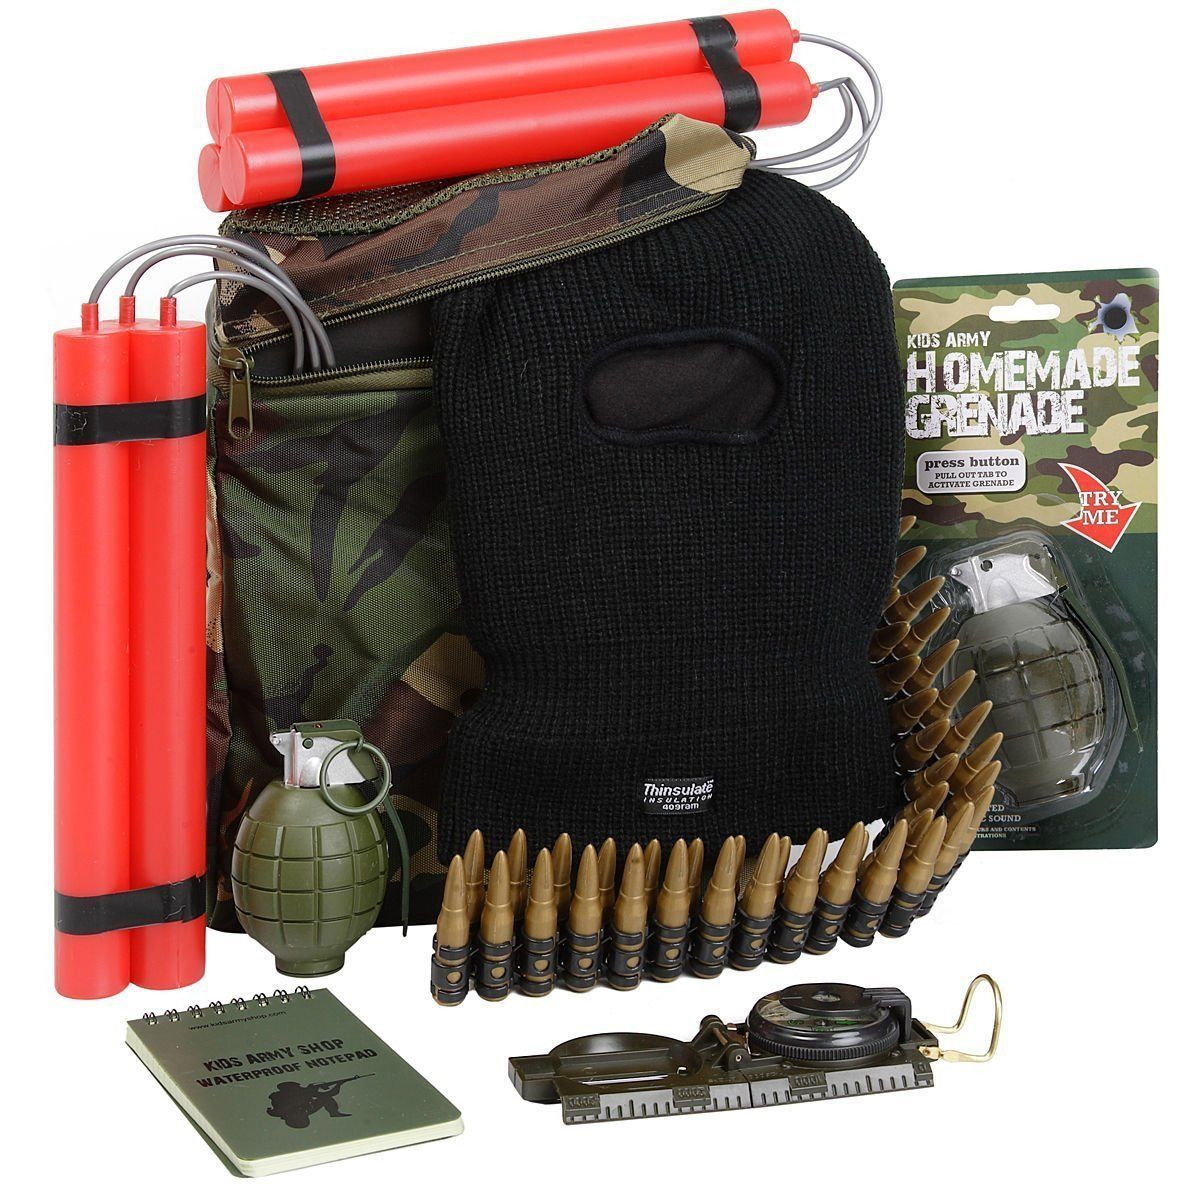 Military Gifts For Kids  Kids Army Camo Ultimate Great Escape Pack Toy Set Ideal